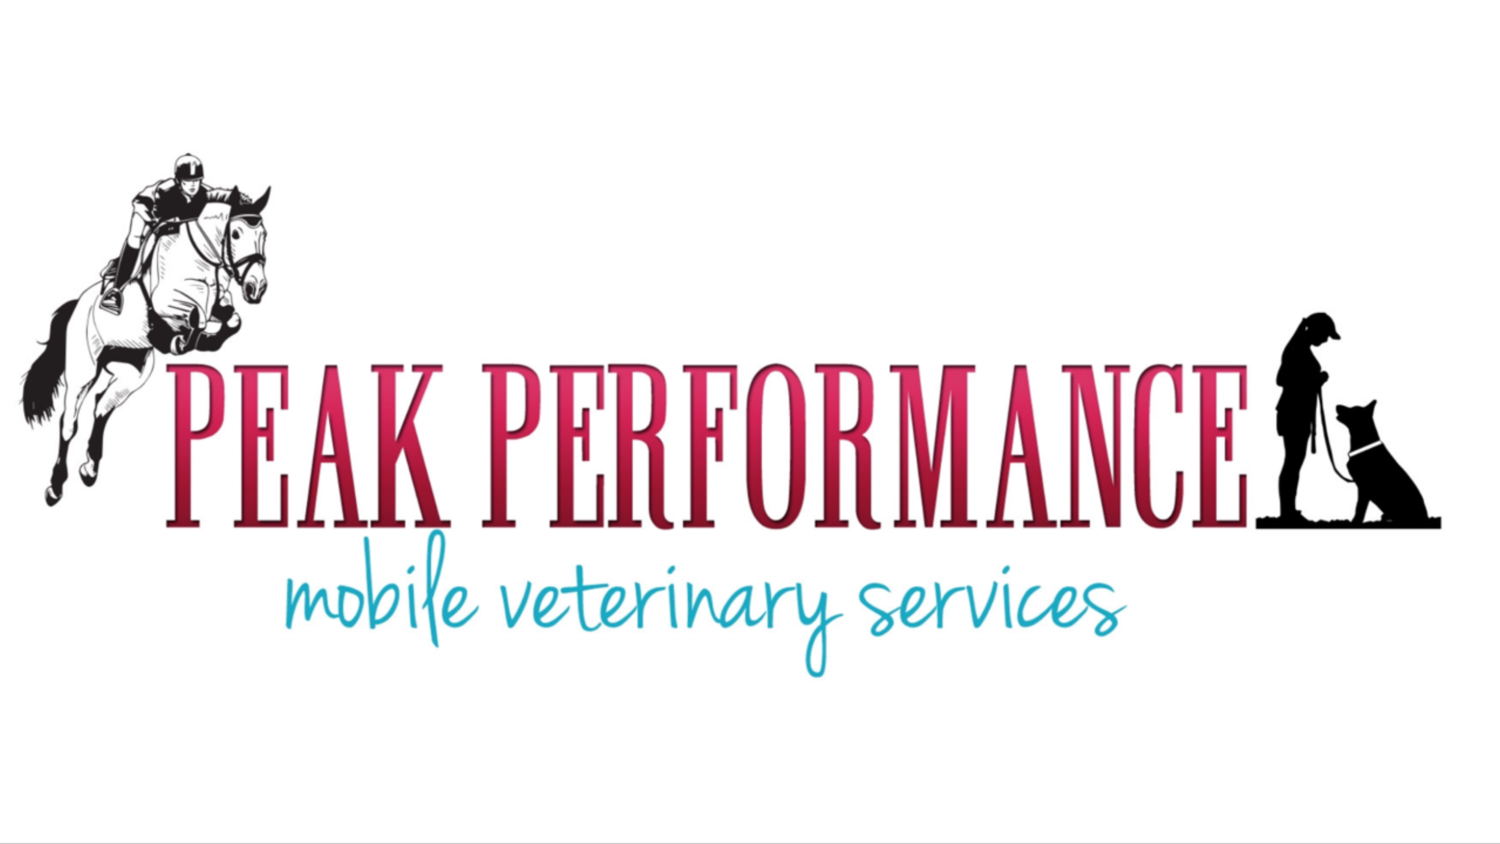 Peak Performance Mobile Veterinary Services